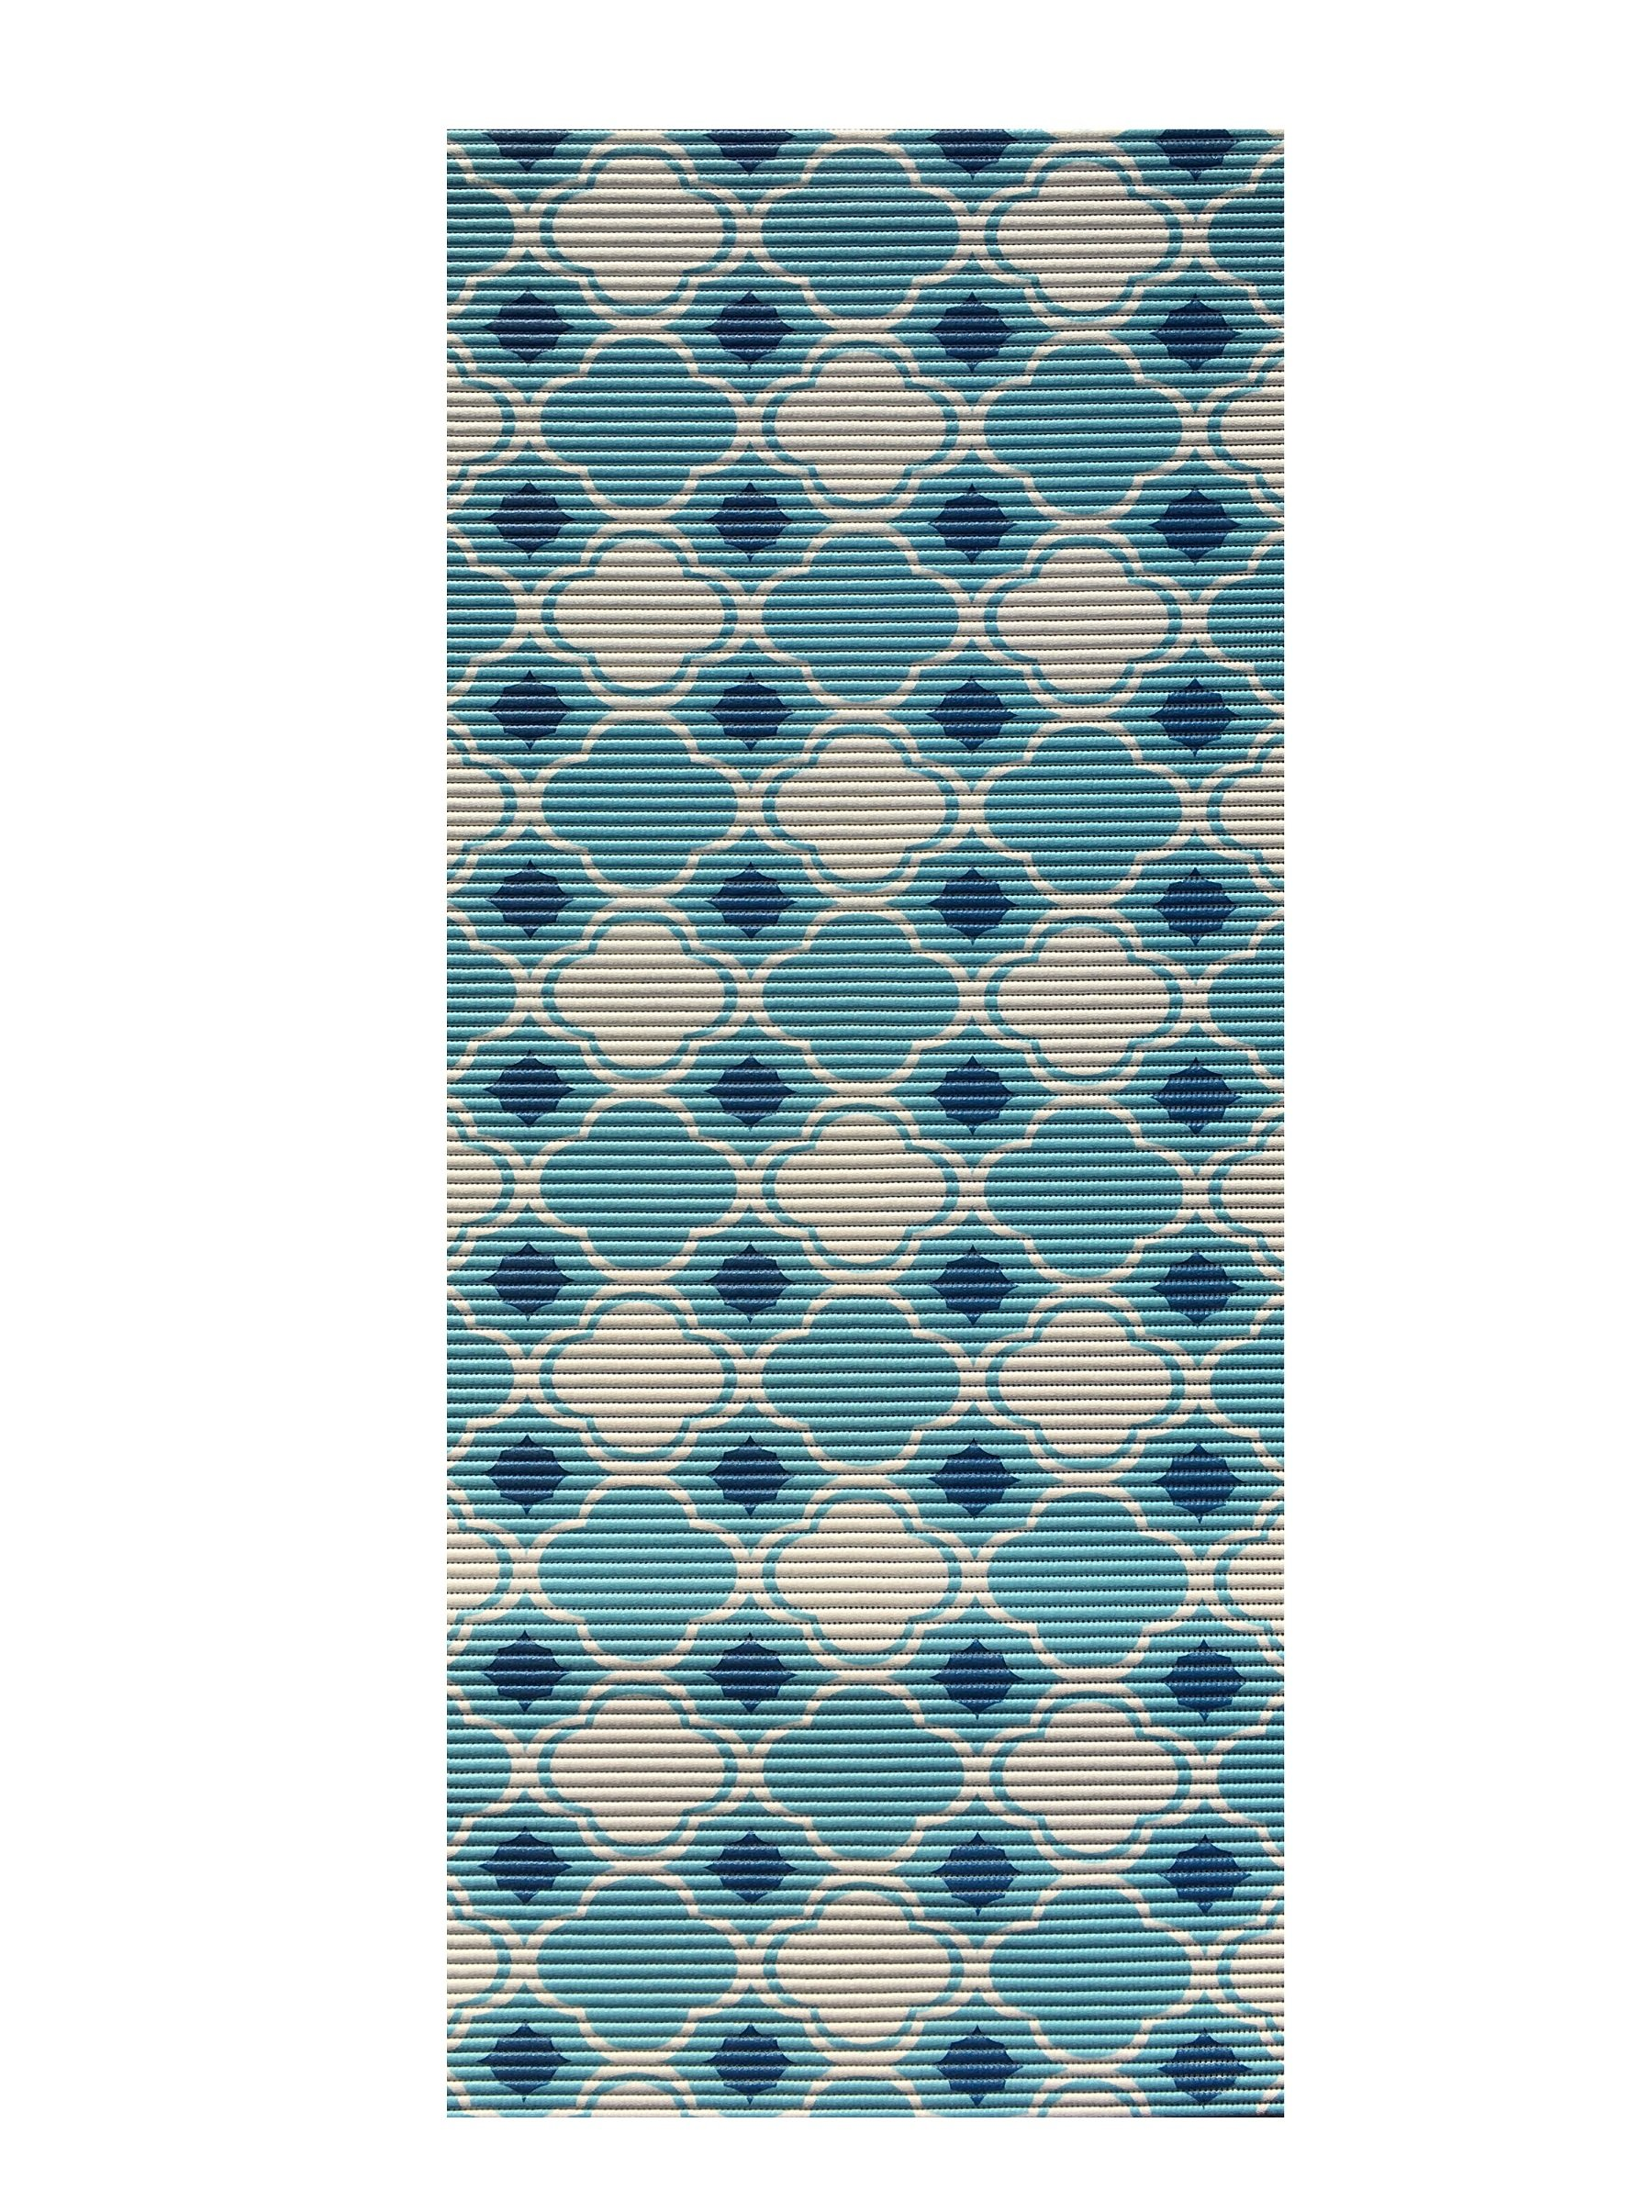 All Design Mats AQ4003-02-2x6 Cushioned Non-Slip/Rubber Moroccan Trellis Aqua Runner/Doormat, Easy Cut to Fit in Your Hallway, Bathroom or Kitchen with Scissors, Blue